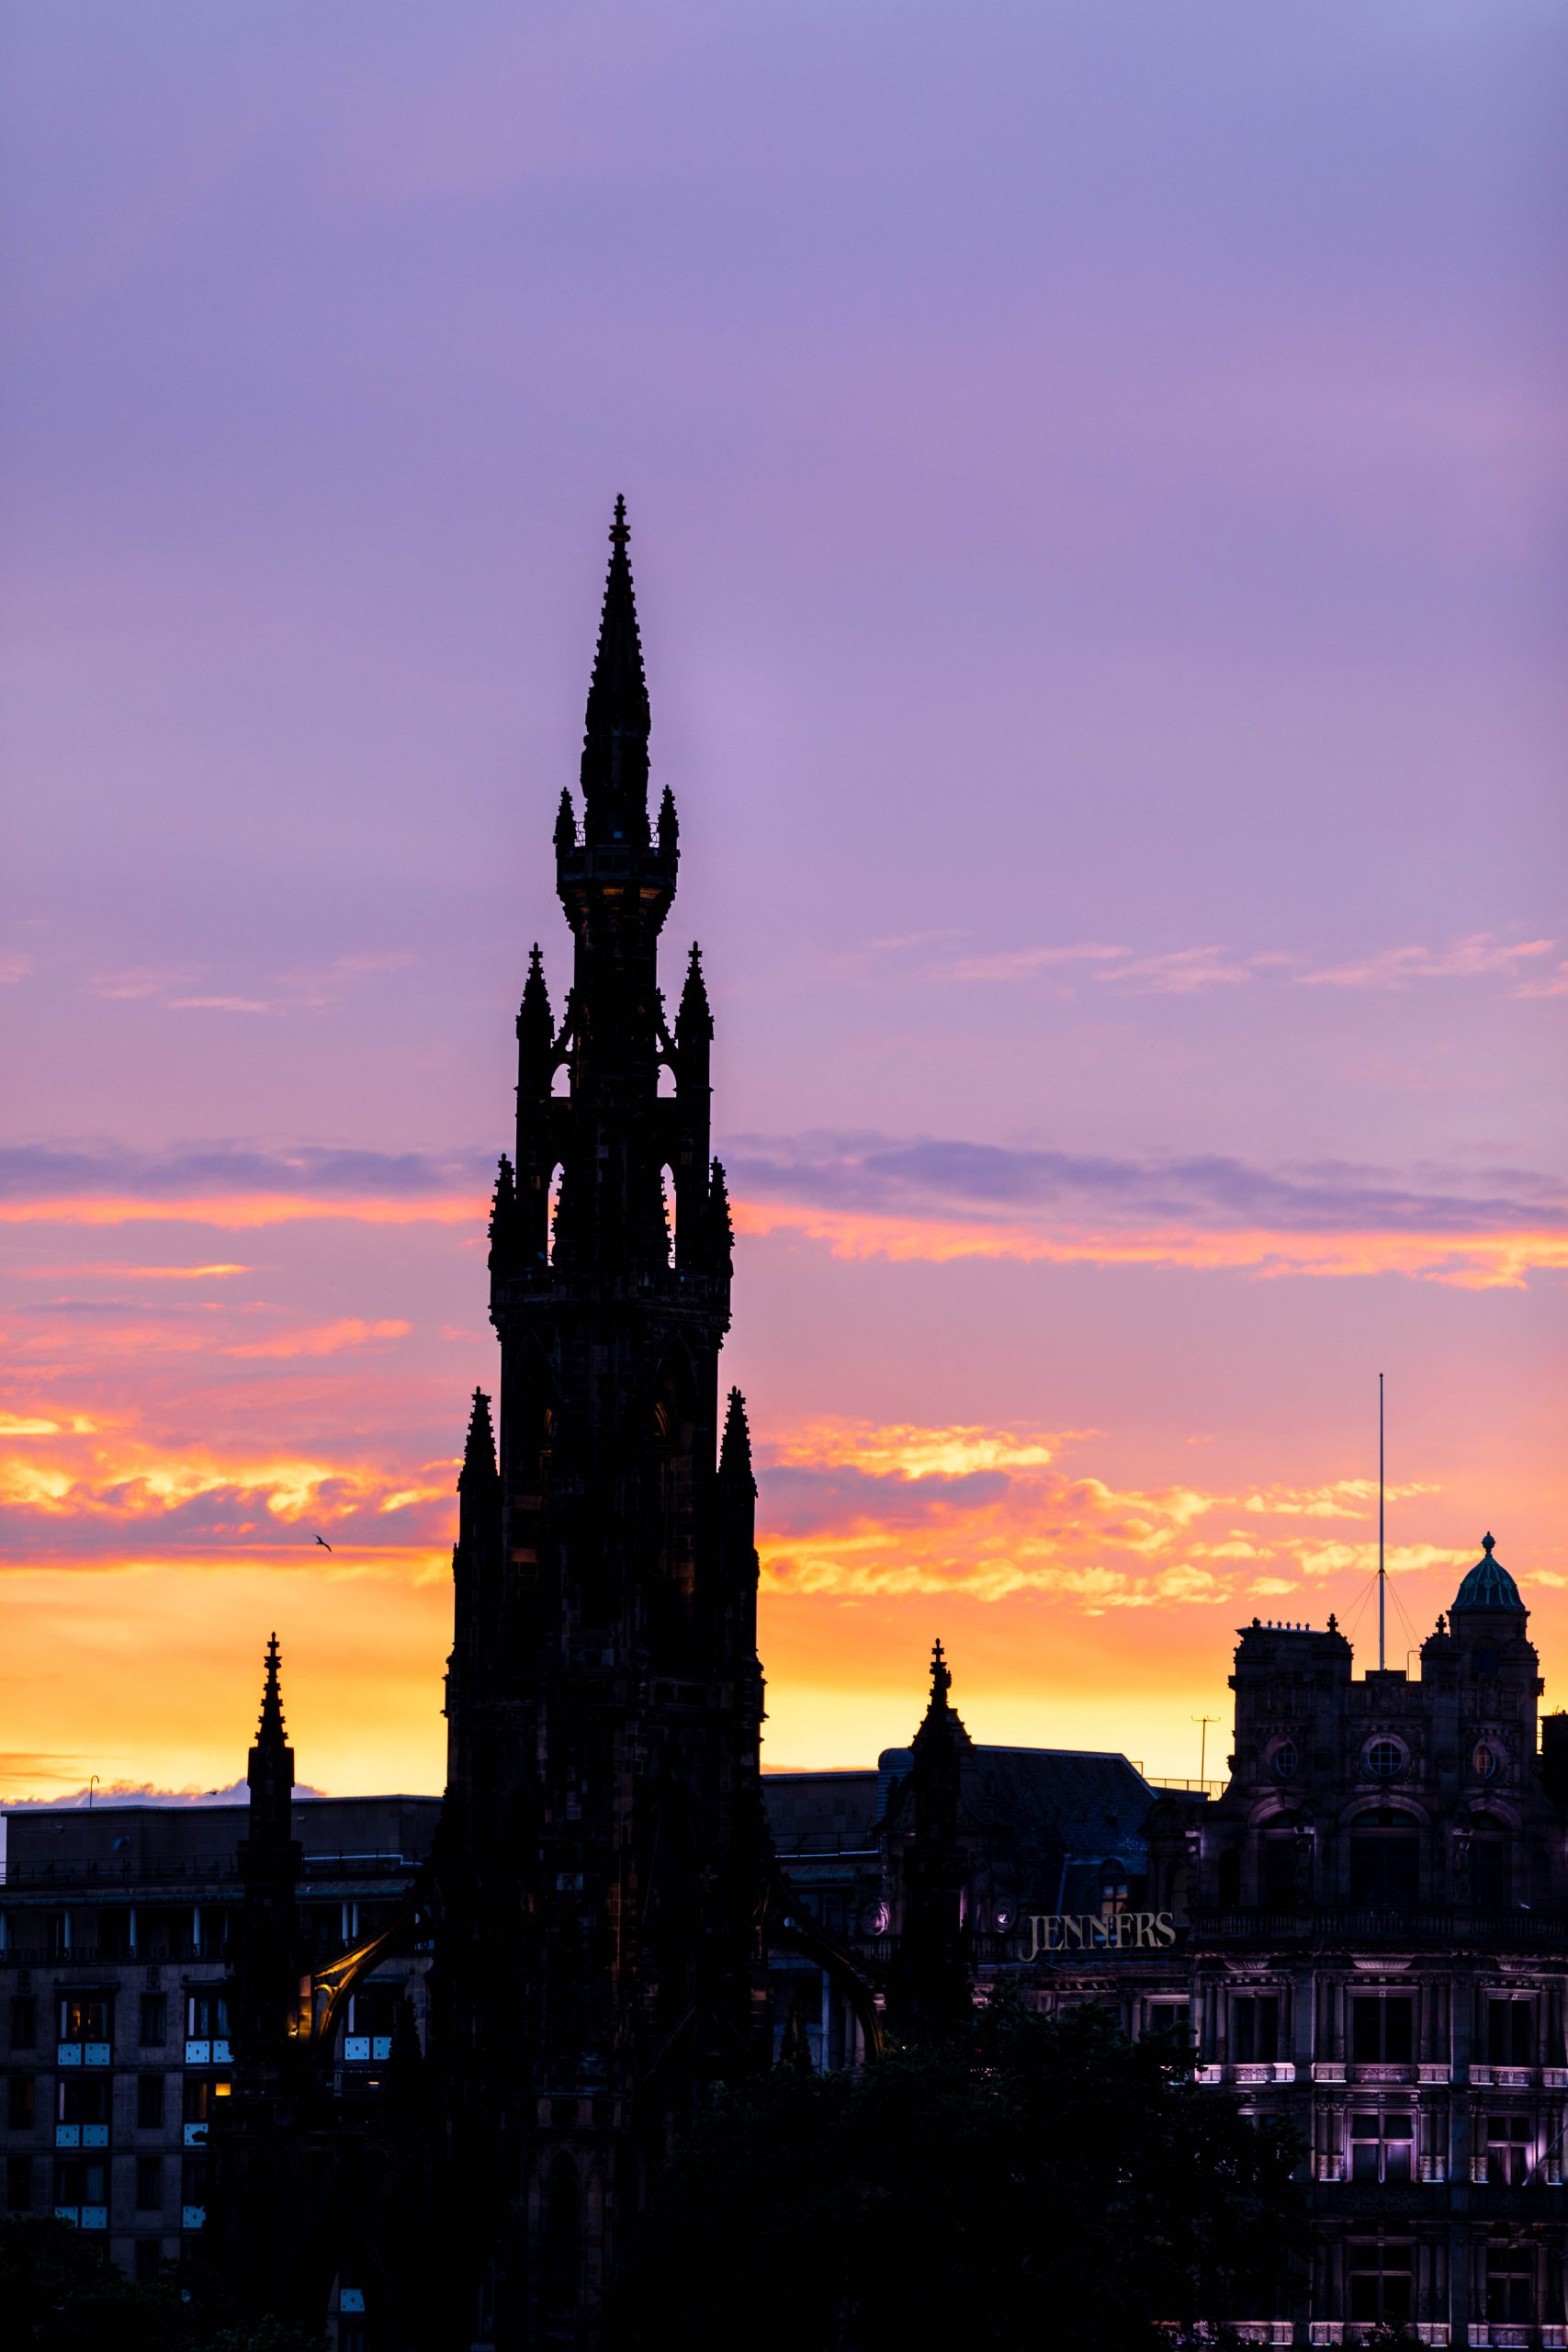 Scott Monument in Edinburgh Scotland at Sunset Luxury Travel Guide by Annie Fairfax